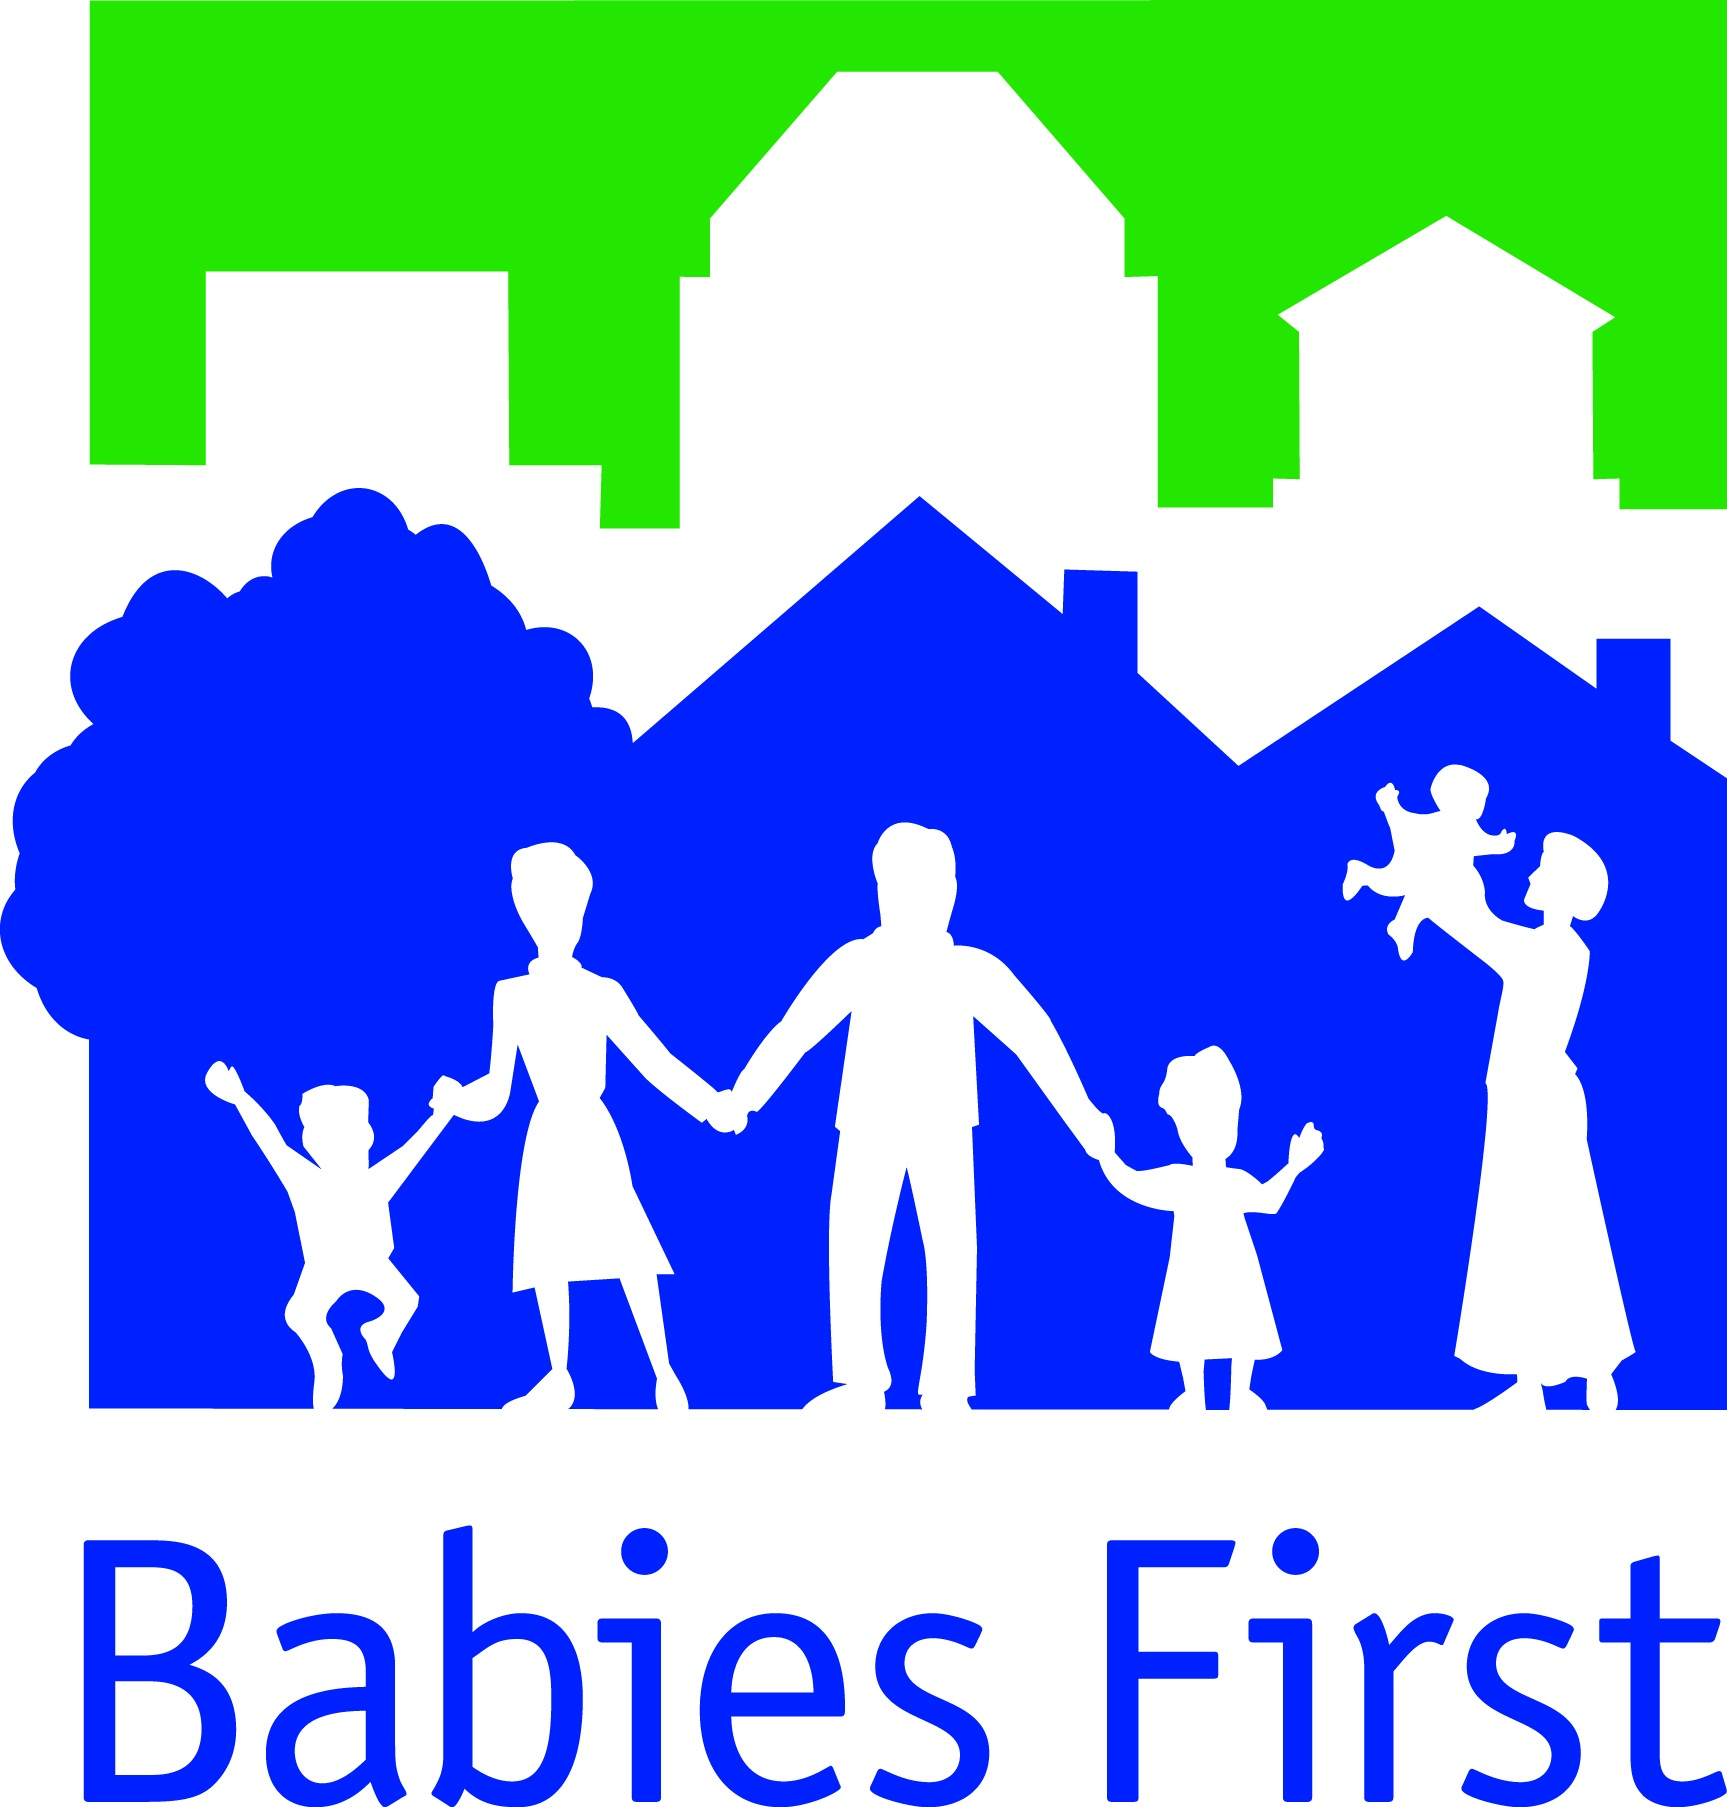 Babies first county of fresno babies first bright transparent 1betcityfo Choice Image